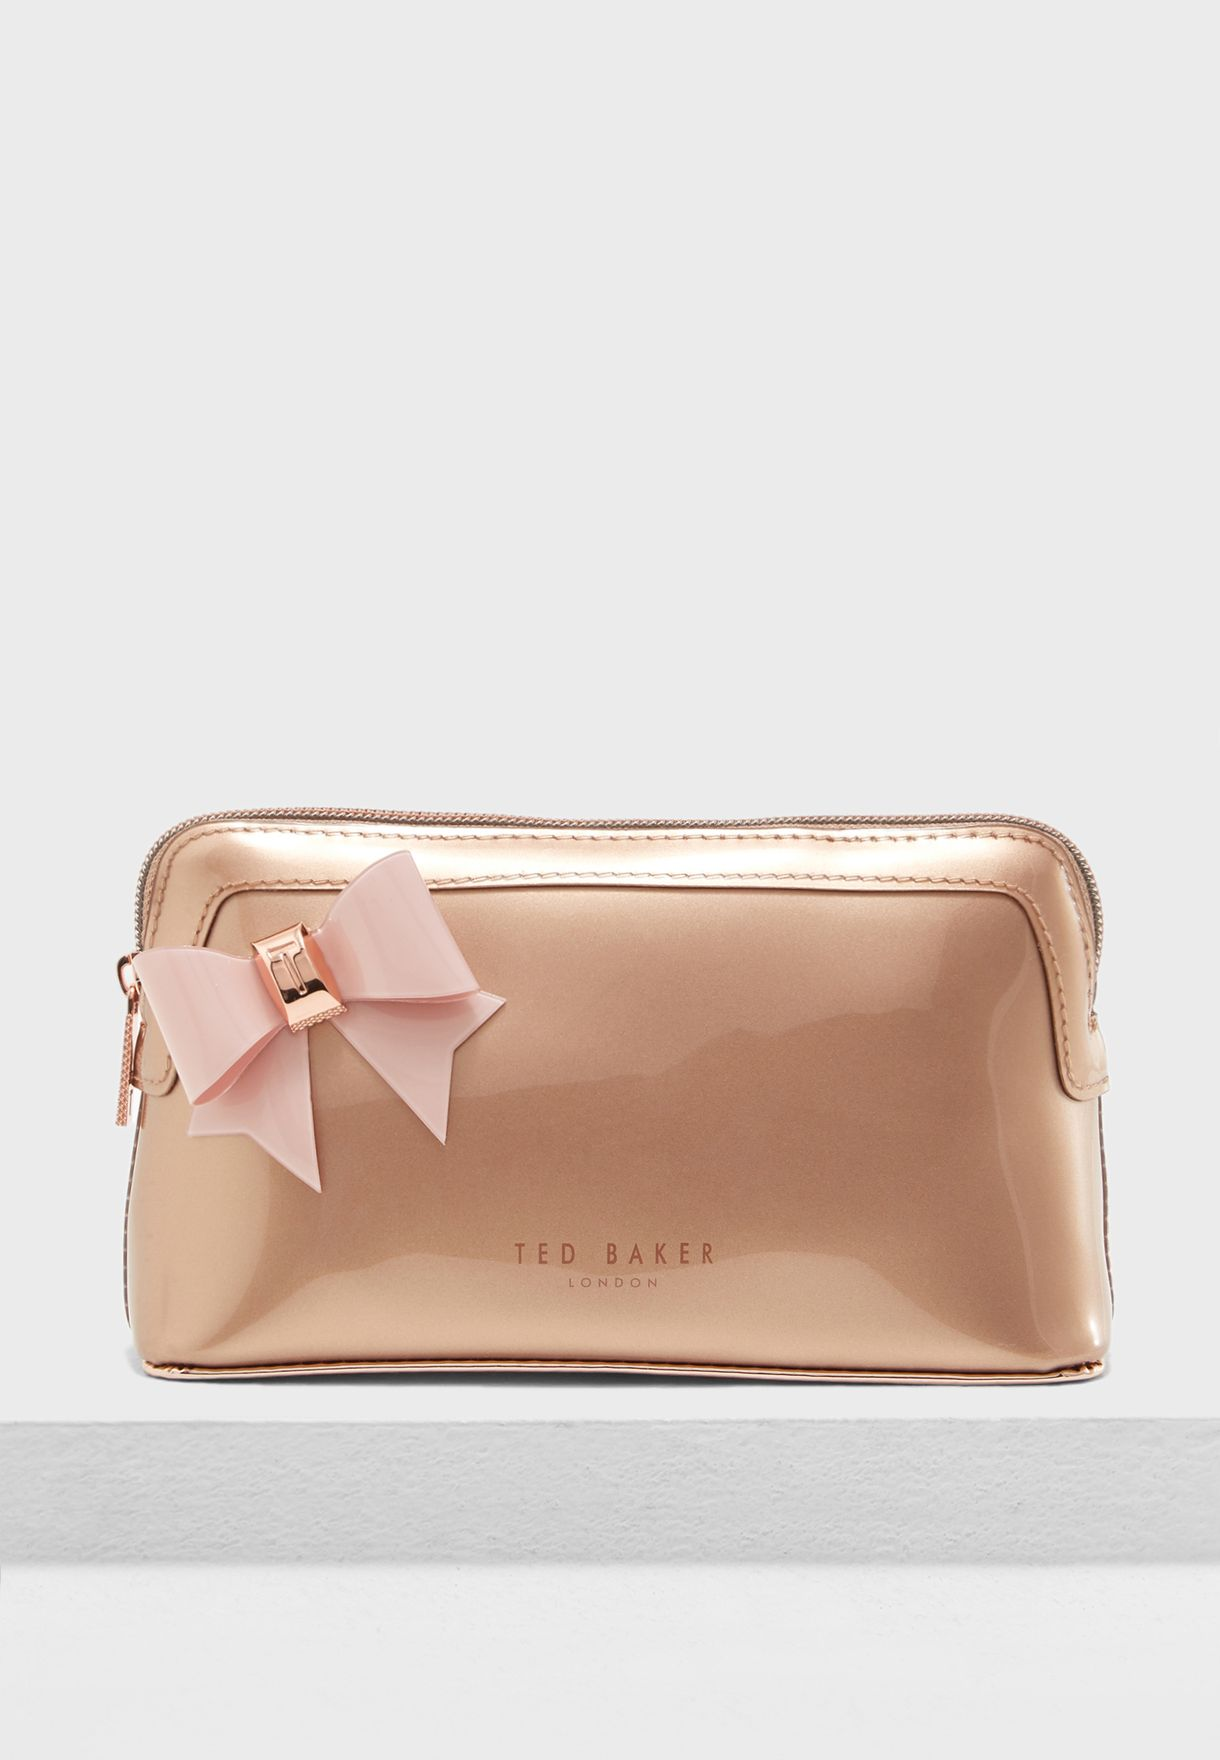 0fa36eec0e12 Shop Ted baker rosegold Aubrie Bow Makeup Bag 146573 for Women in ...